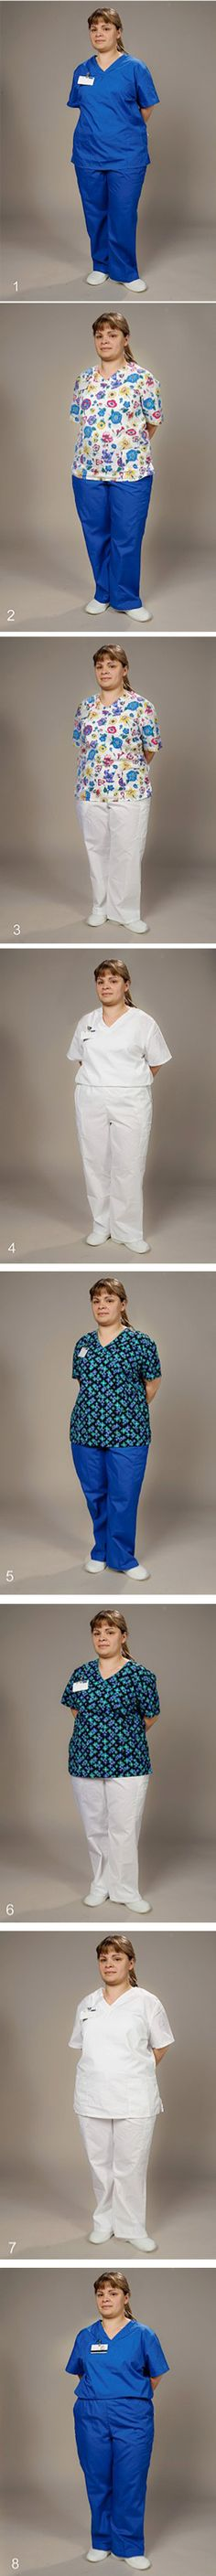 How can we take #nurses seriously when they are dressed in pyjamas?': New push to re-formalize nurses attire.